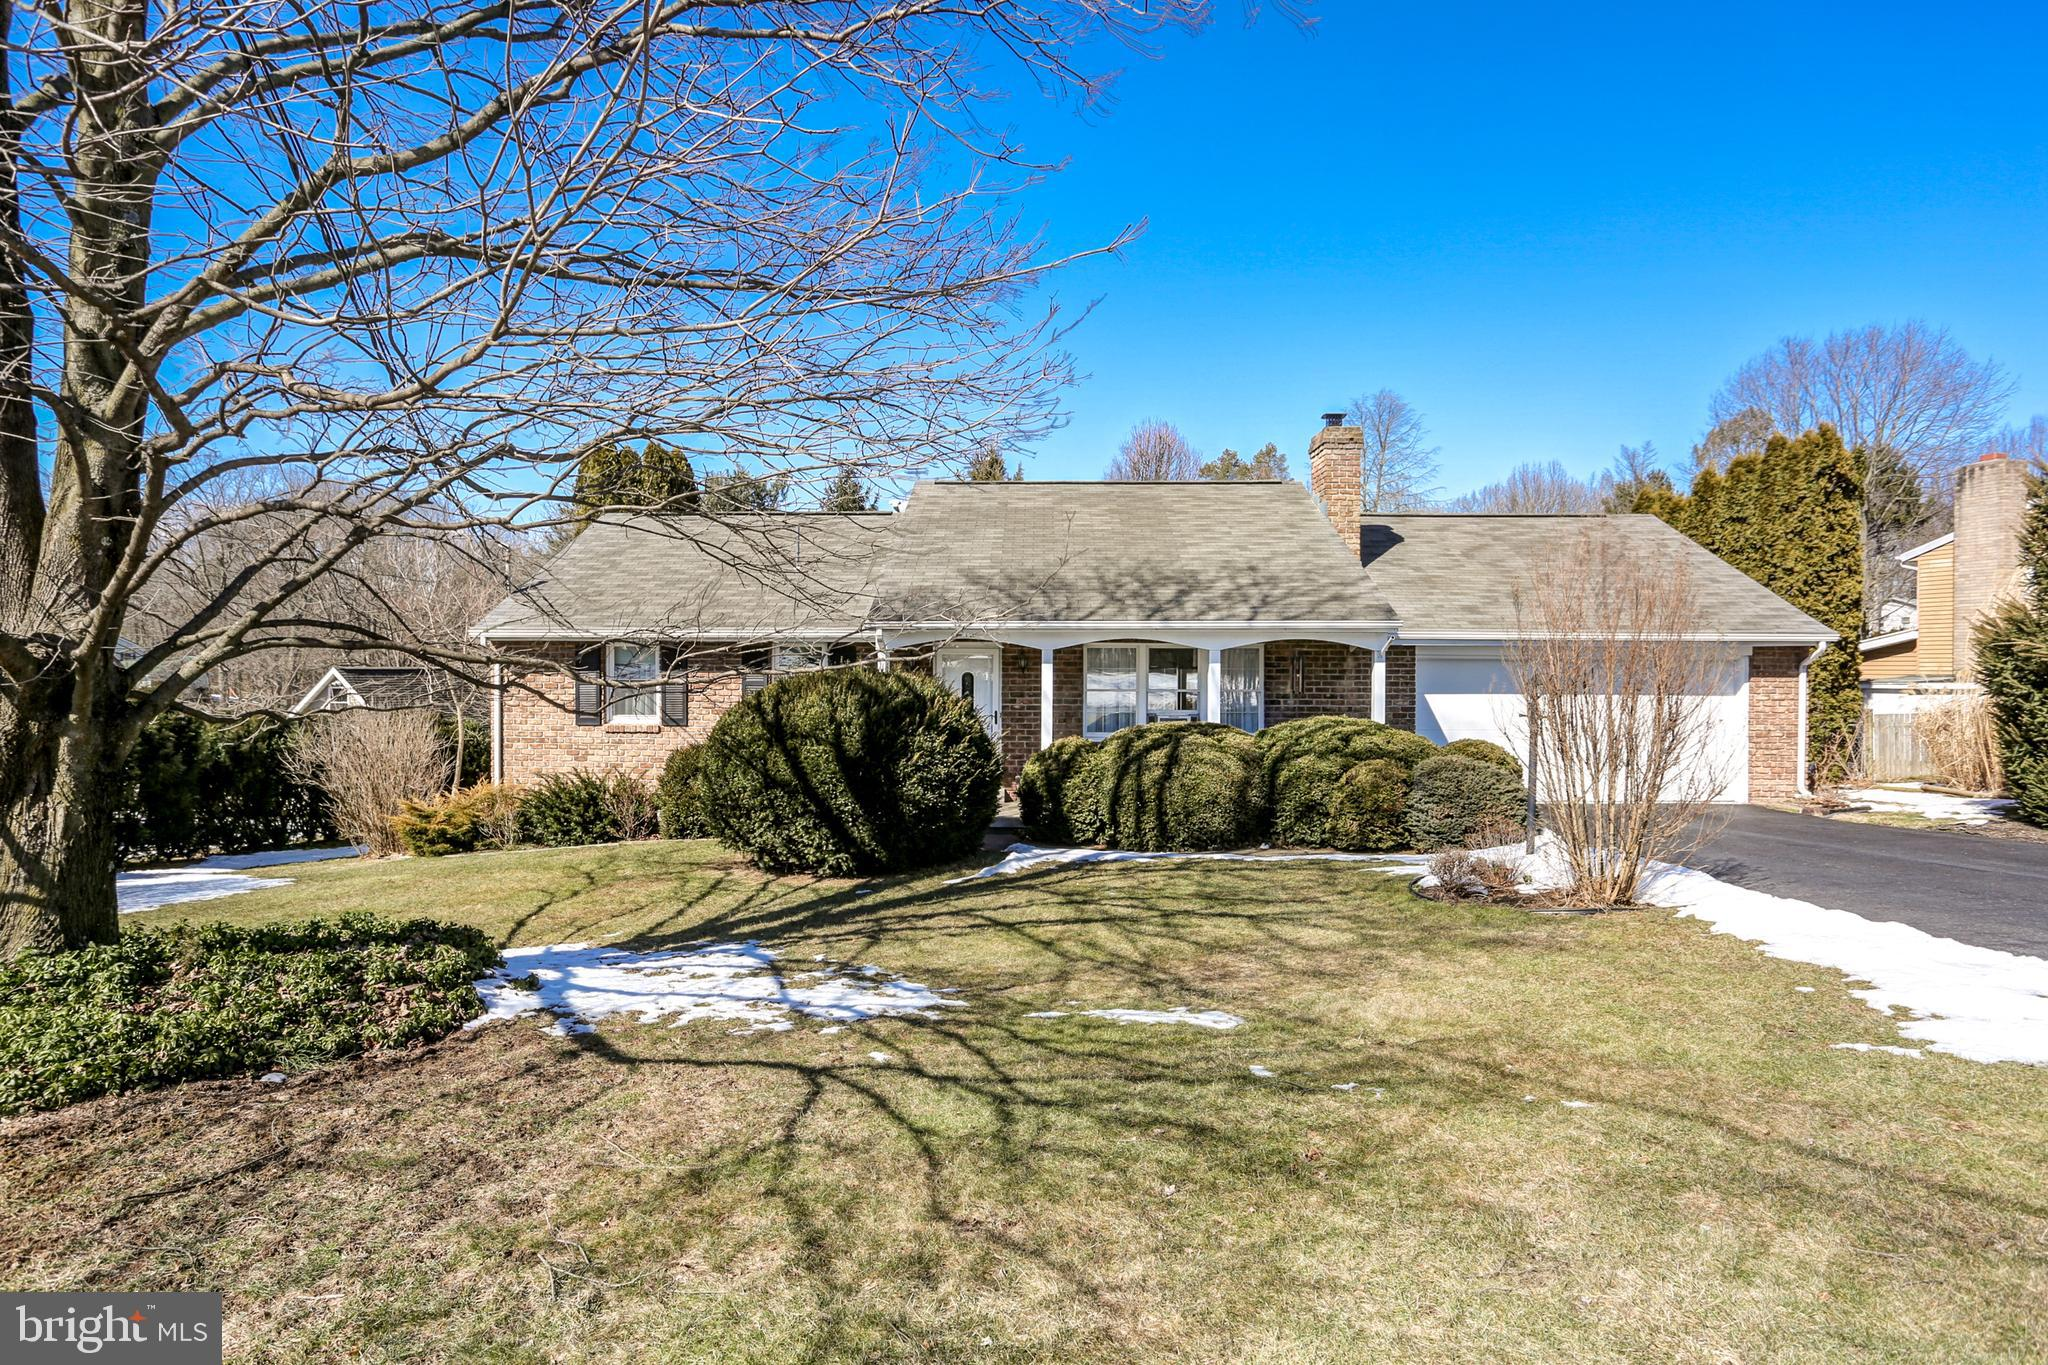 214 BASIN HILL ROAD, DUNCANNON, PA 17020